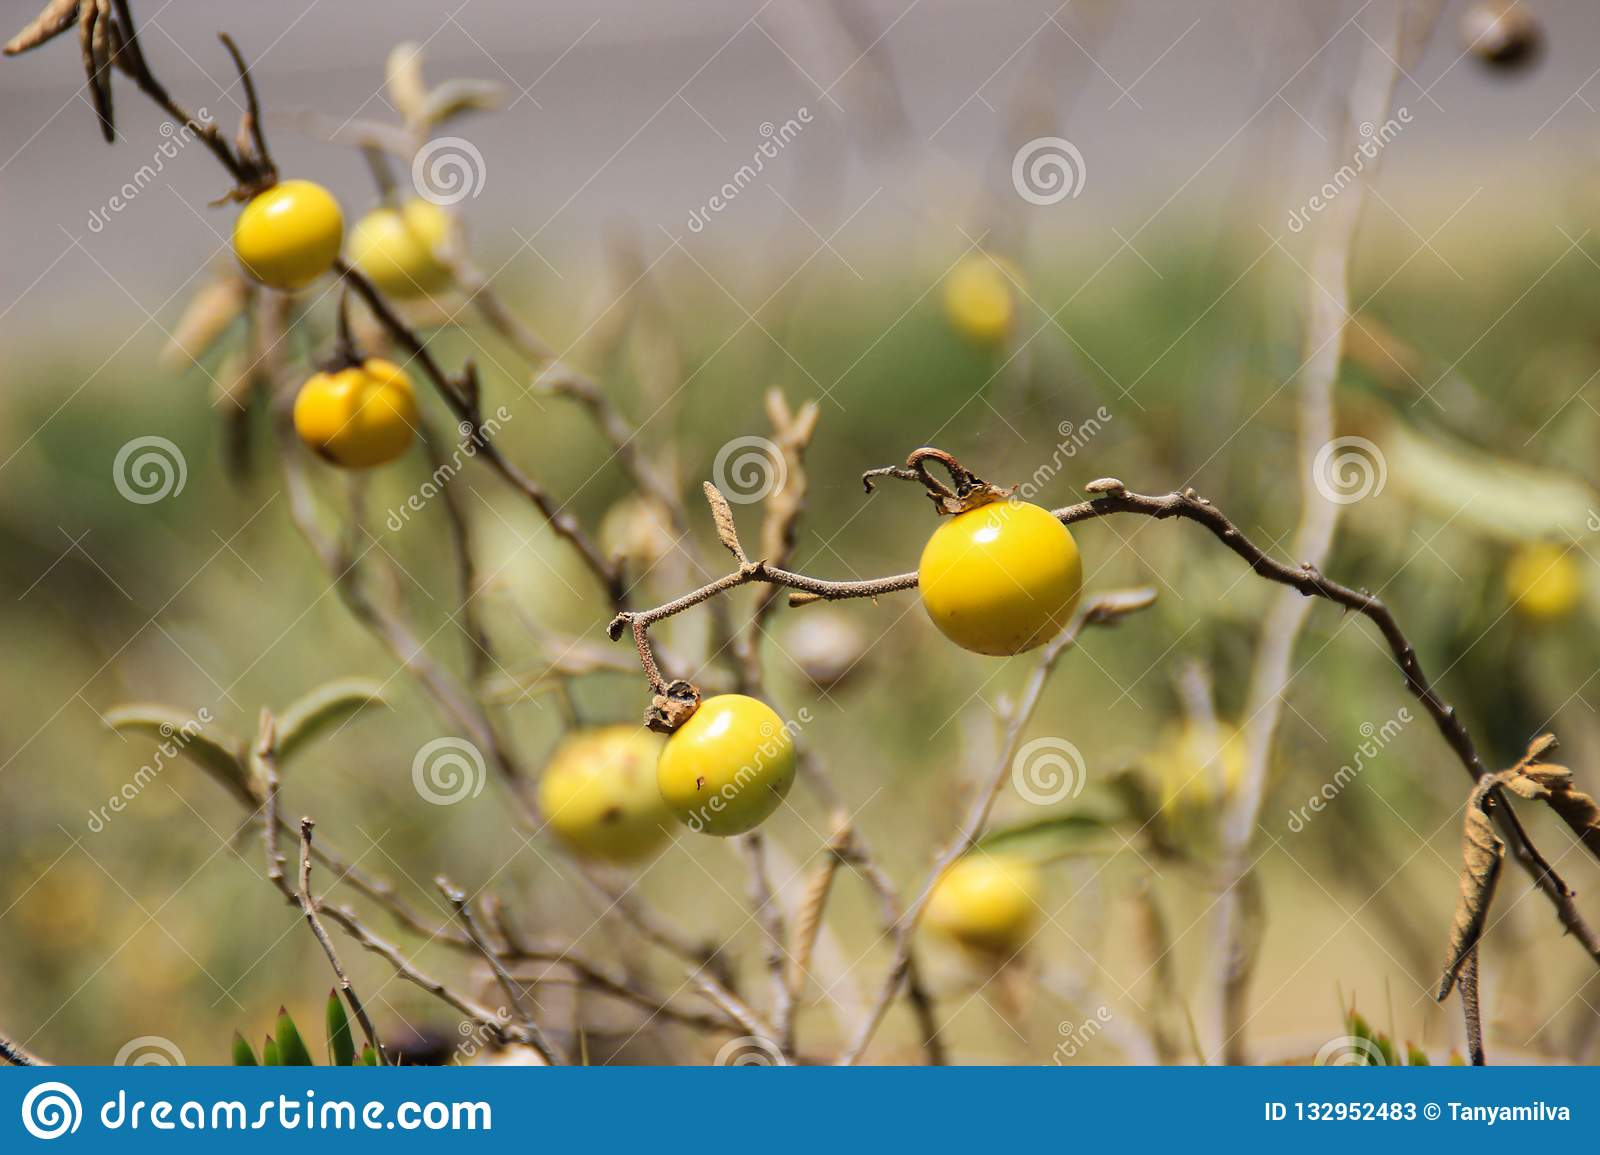 Small yellow fruits of an African plant